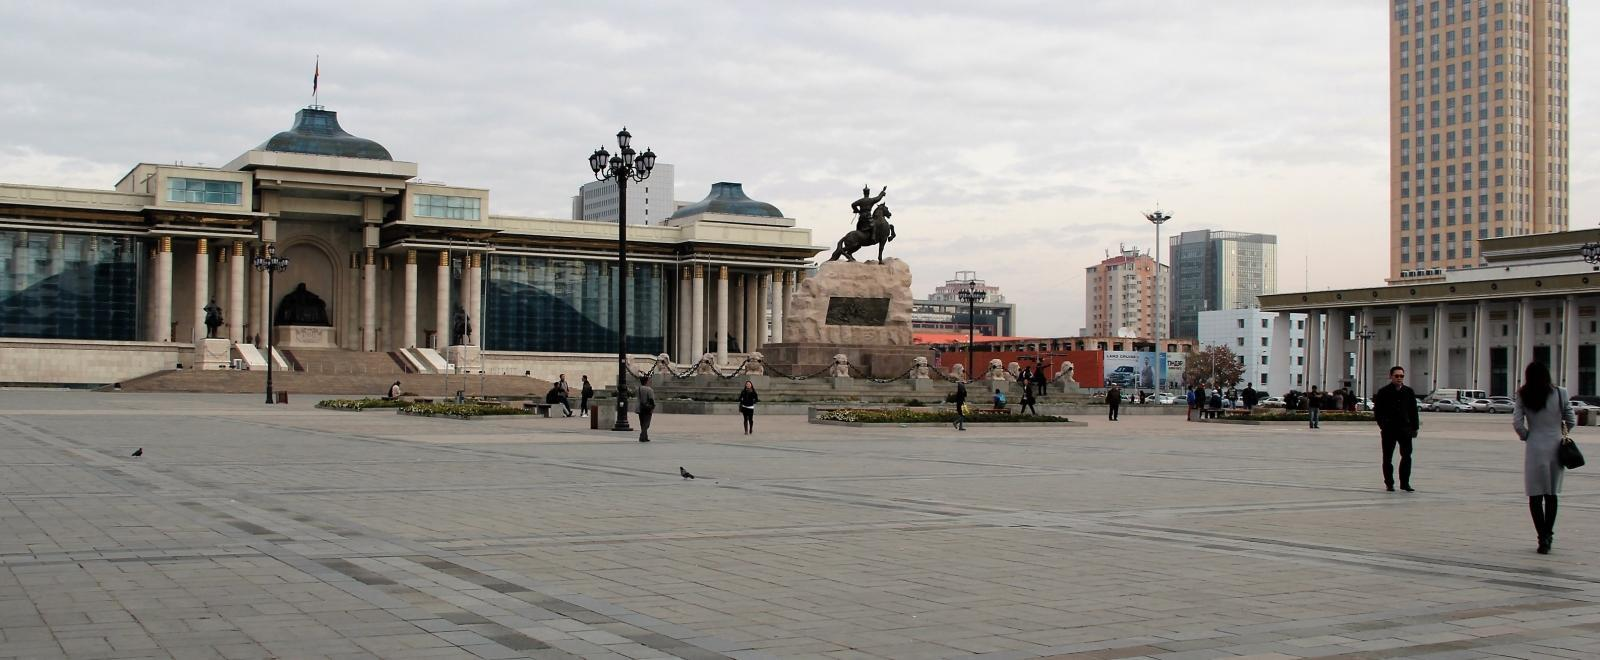 Parliament at Sukhbaatar Square, a site to visit during a Law internship in Mongolia.